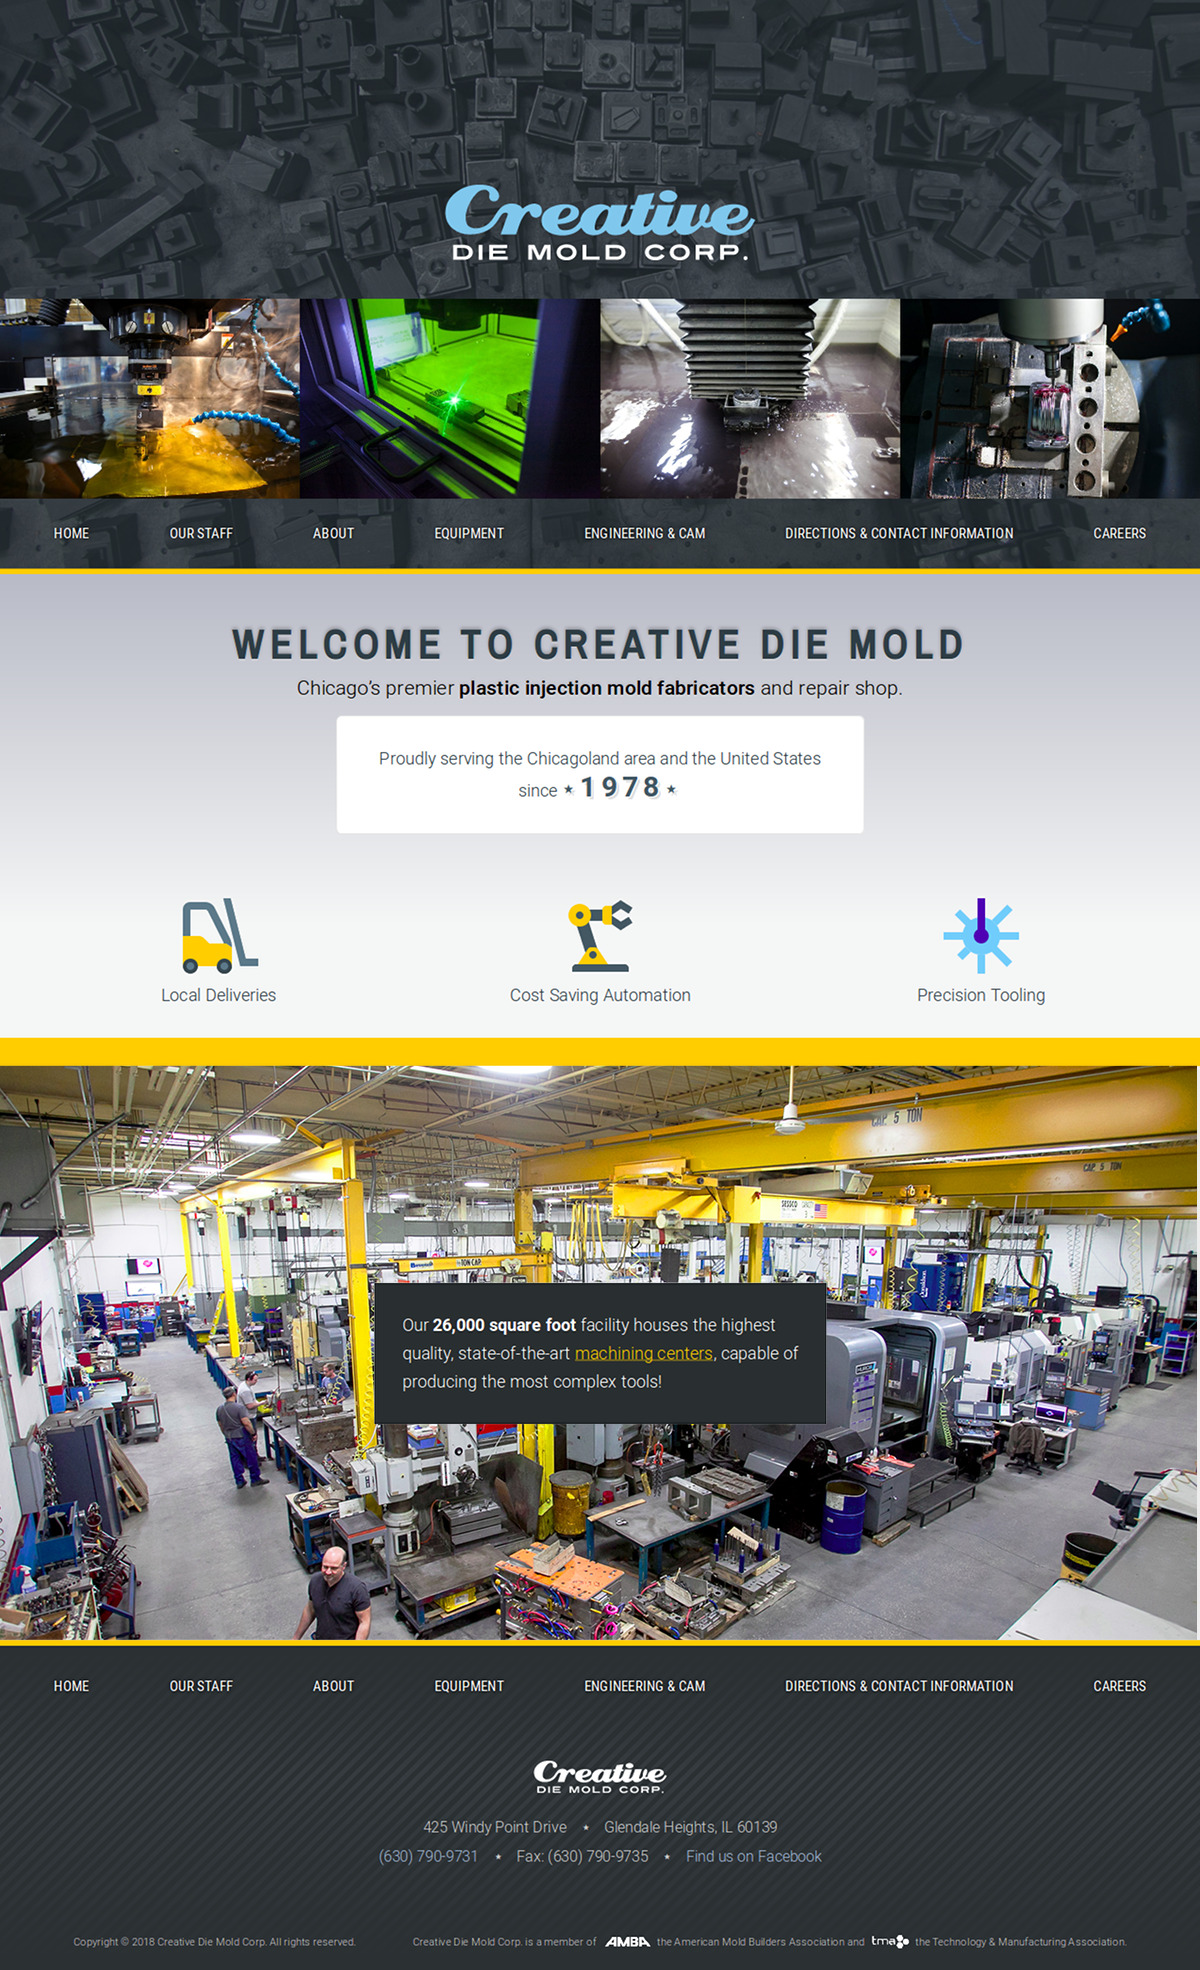 Creative Die Mold Corp.